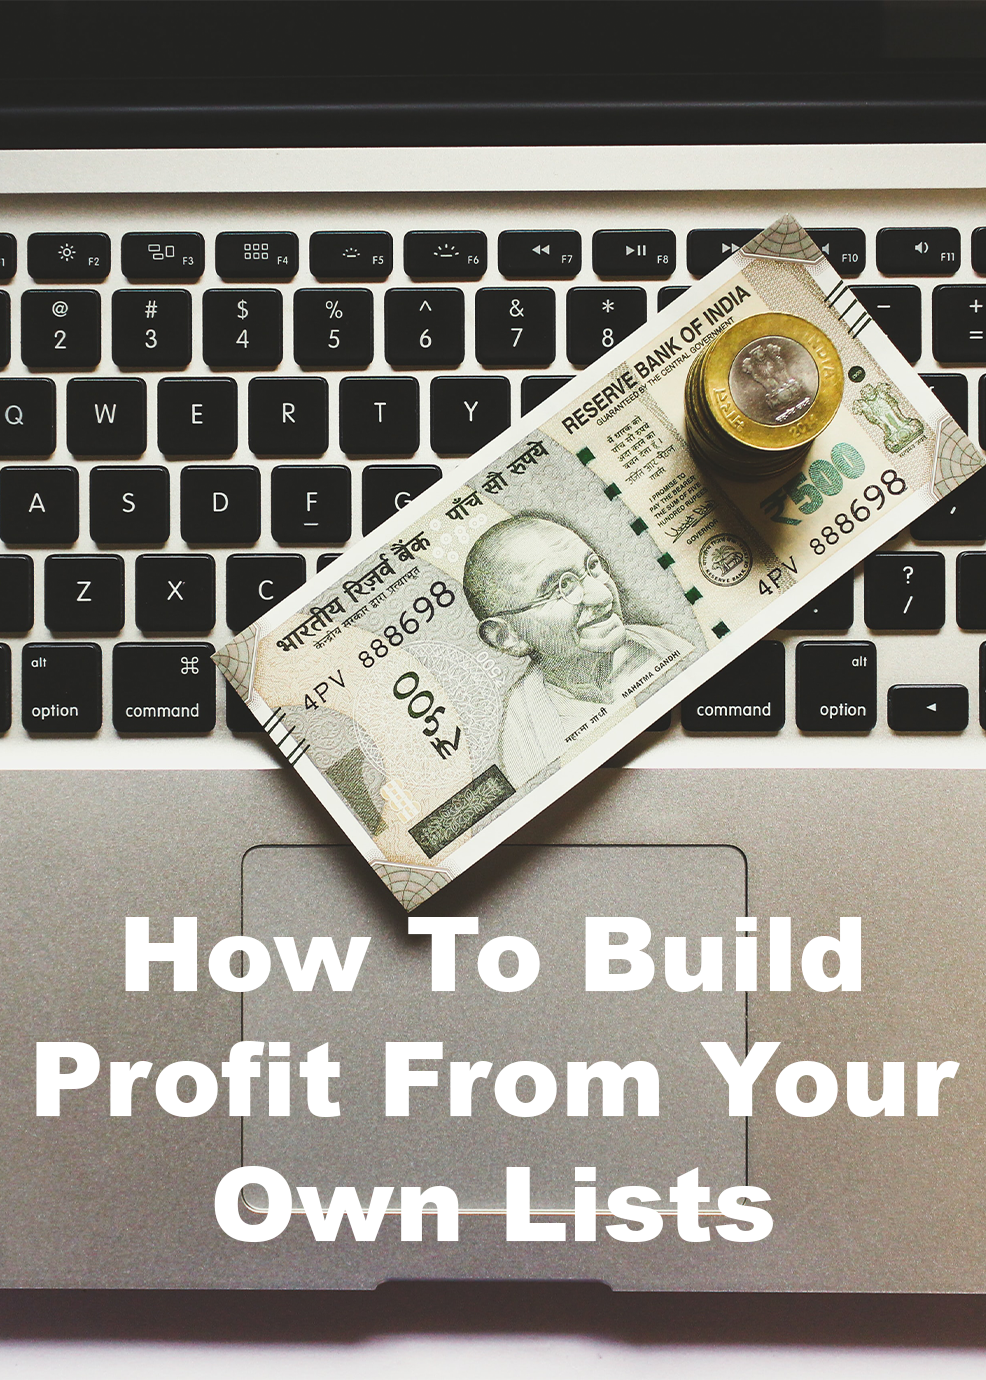 How To Build and Profit from Your Own Lists